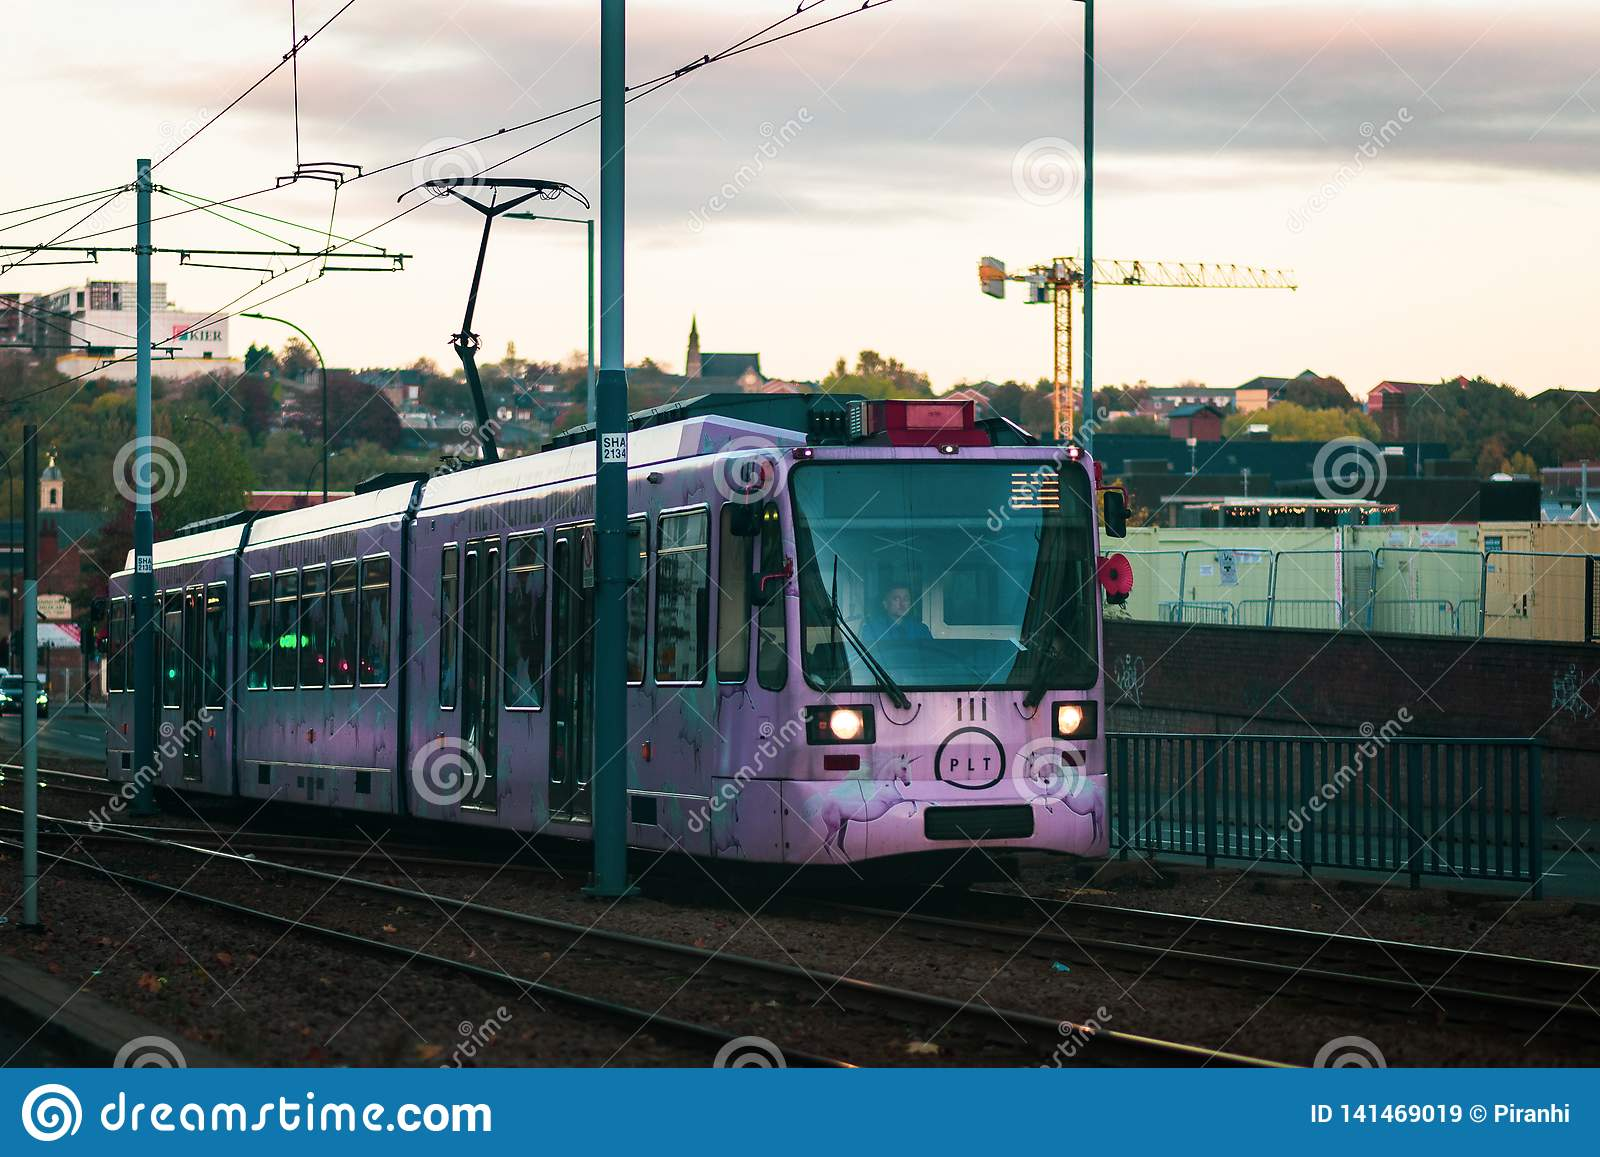 Sheffield, UK - 20th October 2018: One of Sheffields new Pink trams runs through the city